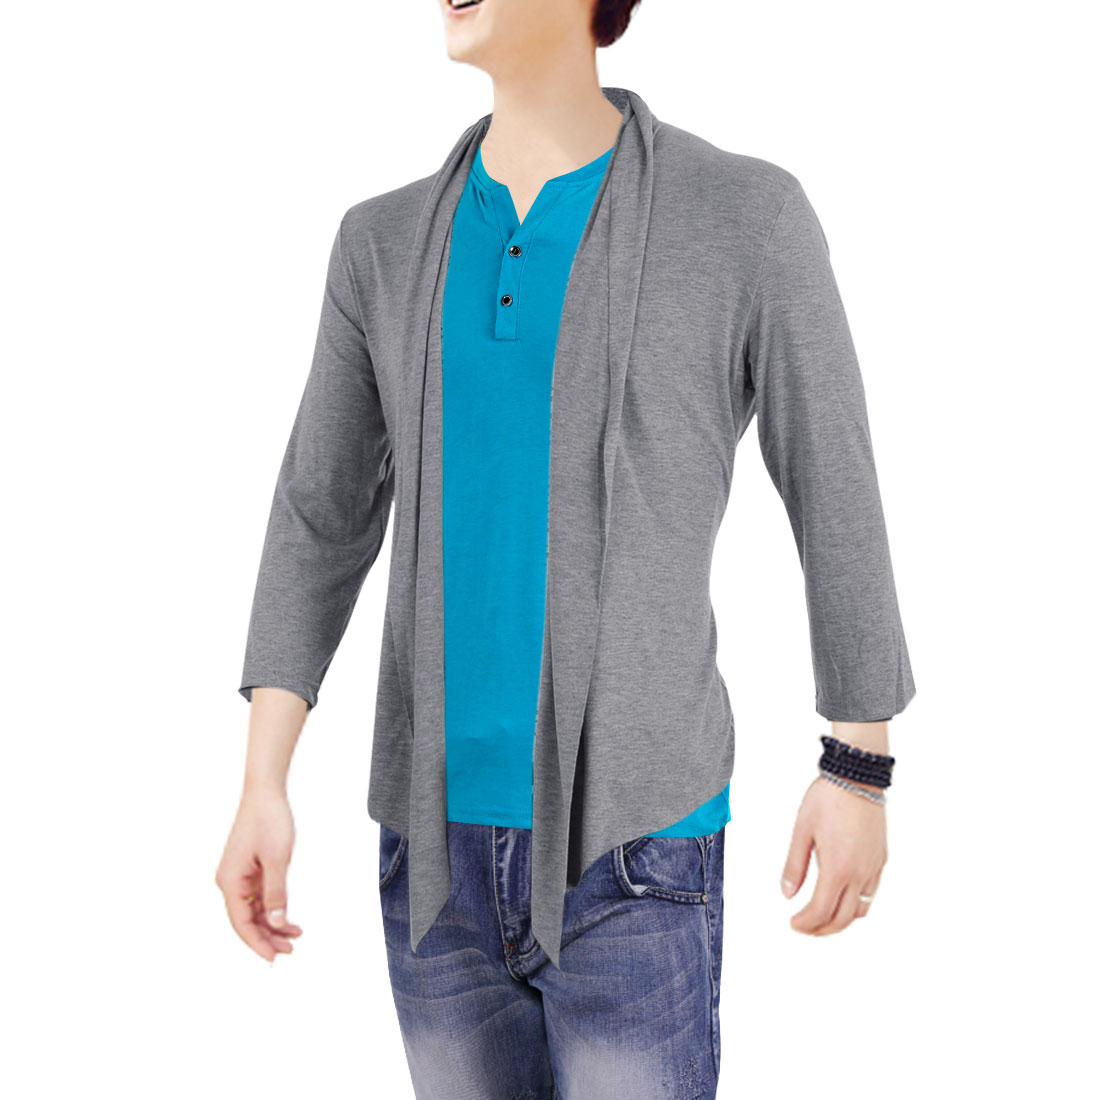 Man Cardigan Warm Stretch Fashional Front Opening Sweater Gray M